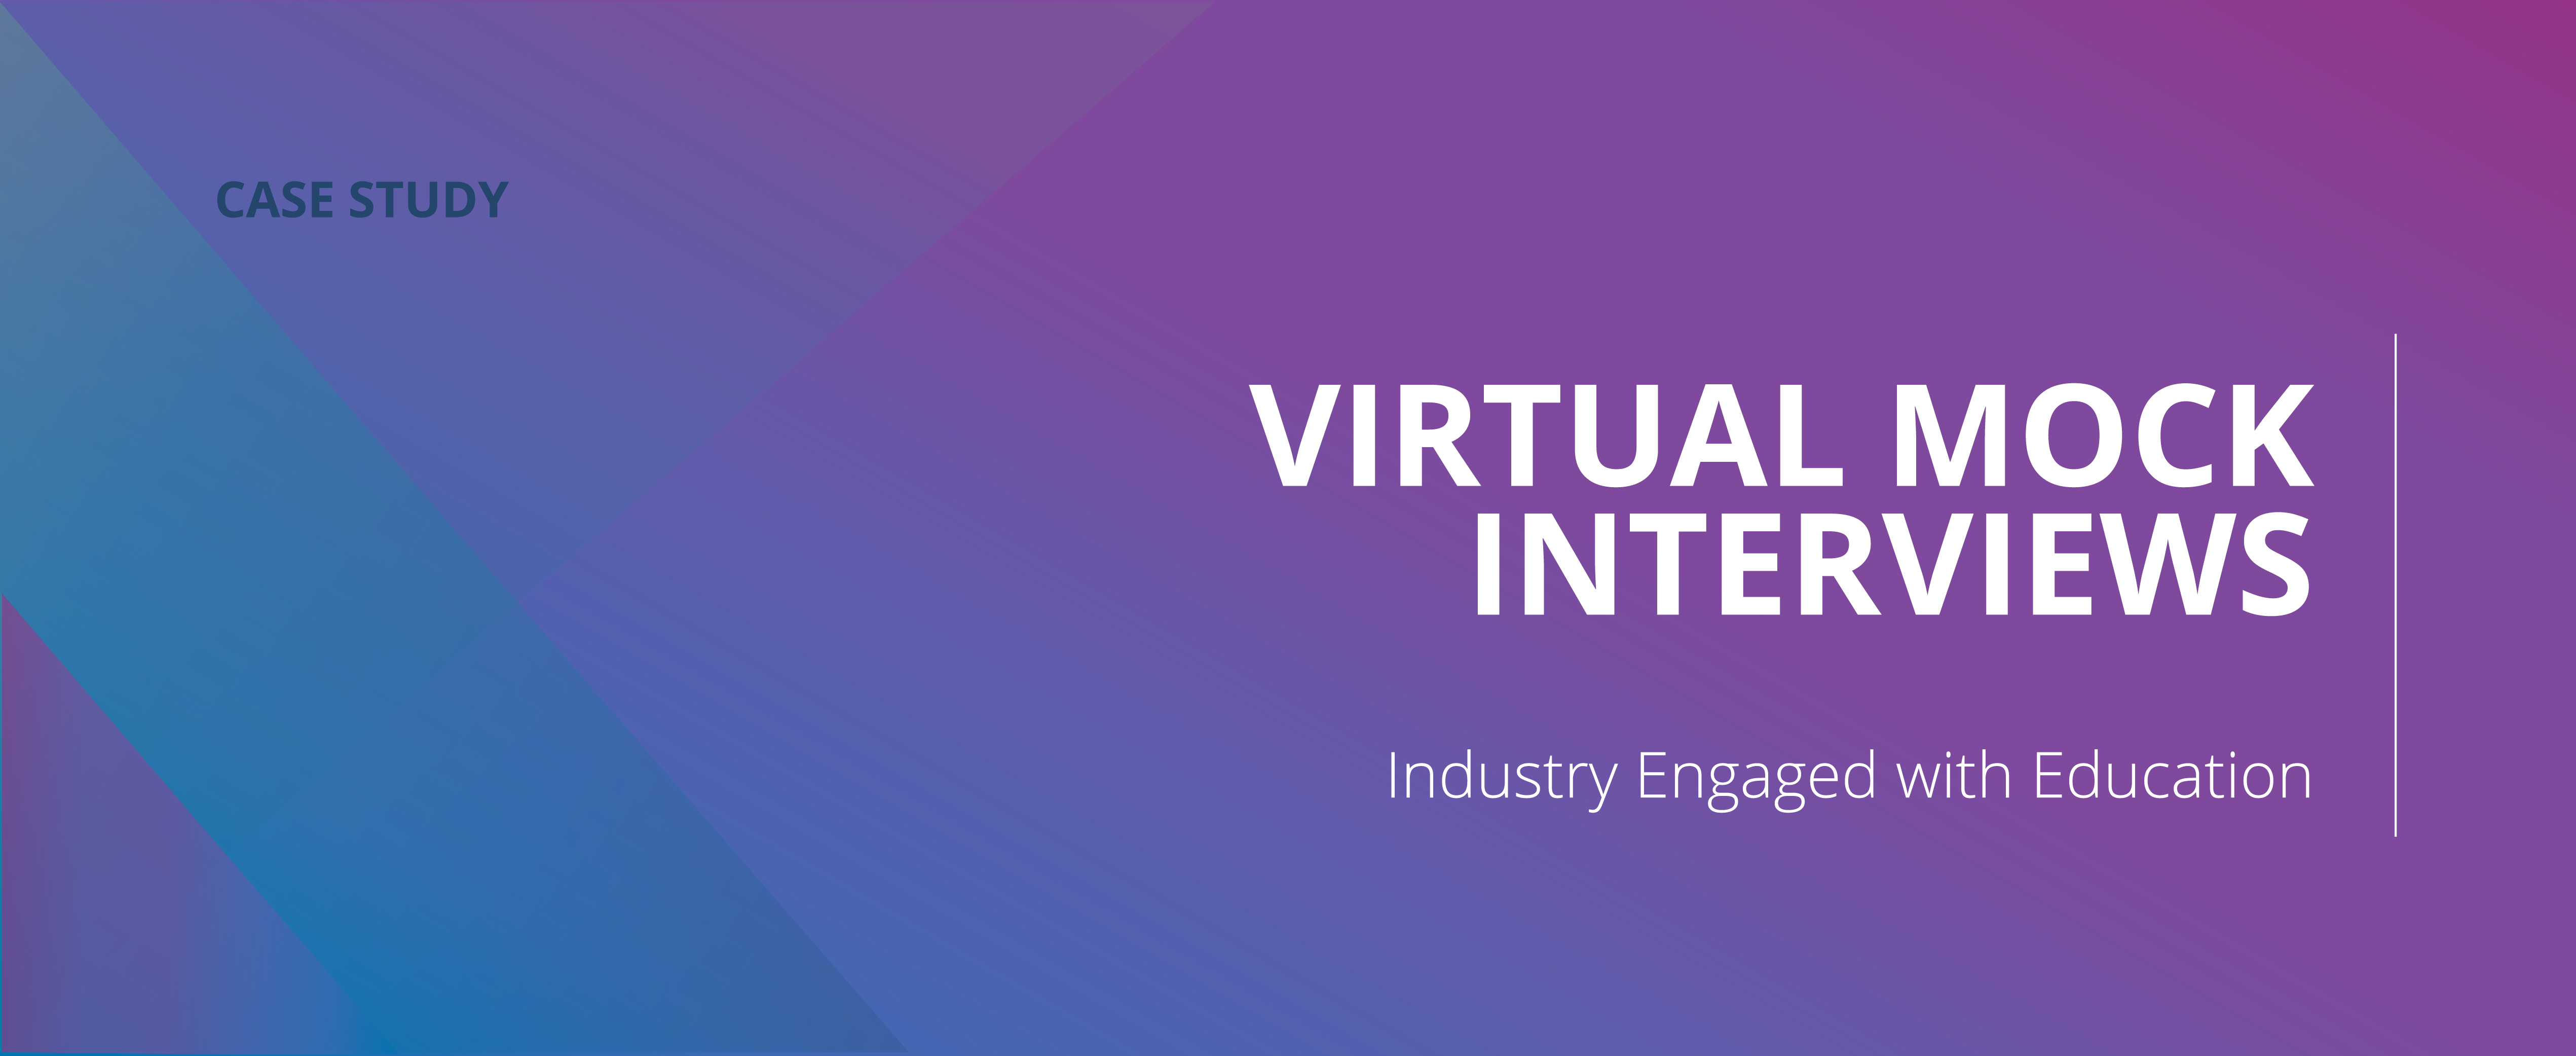 Virtual Mock Interviews – Industry Engaged With Education